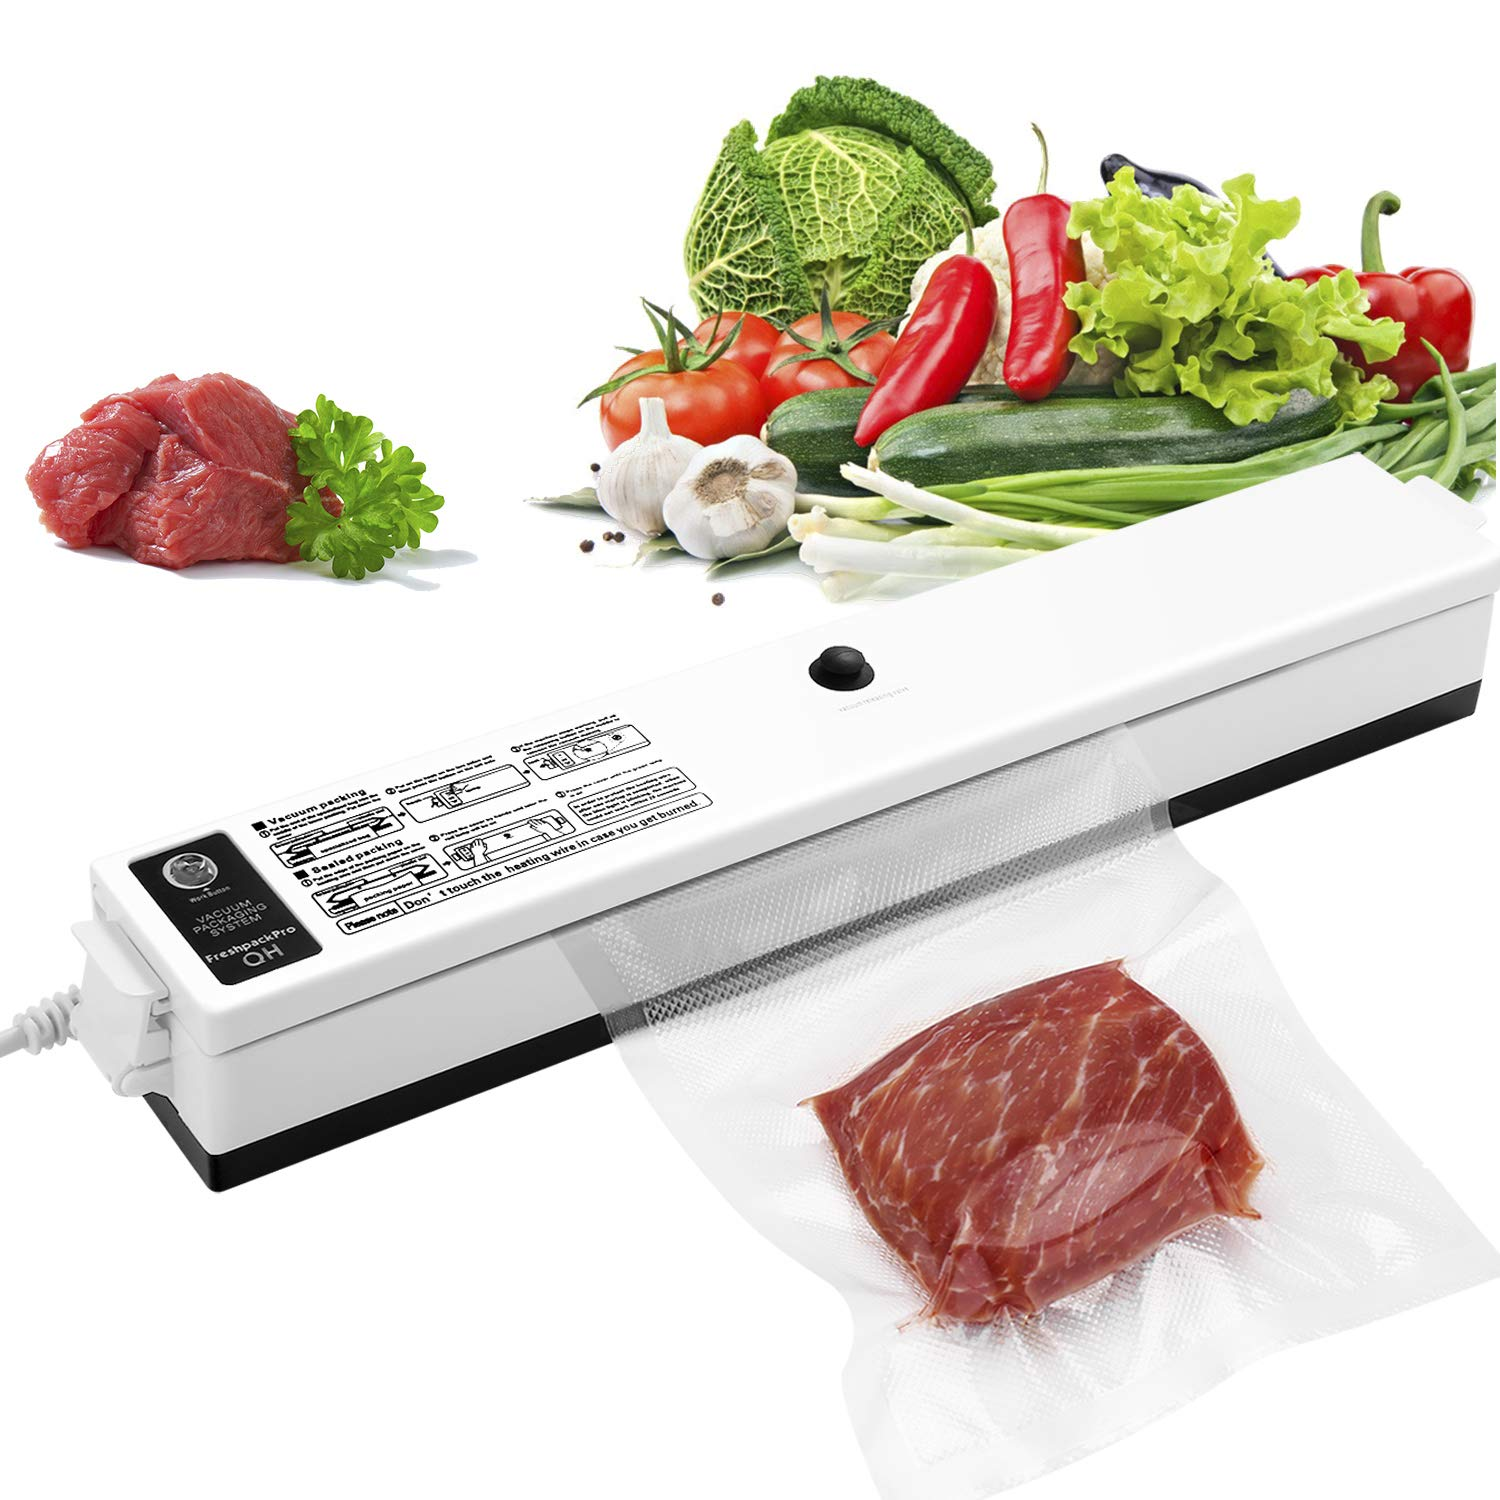 GOSCIEN Vacuum Sealer Machine, Food Sealer Machines Vacuum Food One-button Vacuum Sealing System for Household Commercial Use of Food Preservation with 15 Pcs Vacuum Bags by GOSCIEN